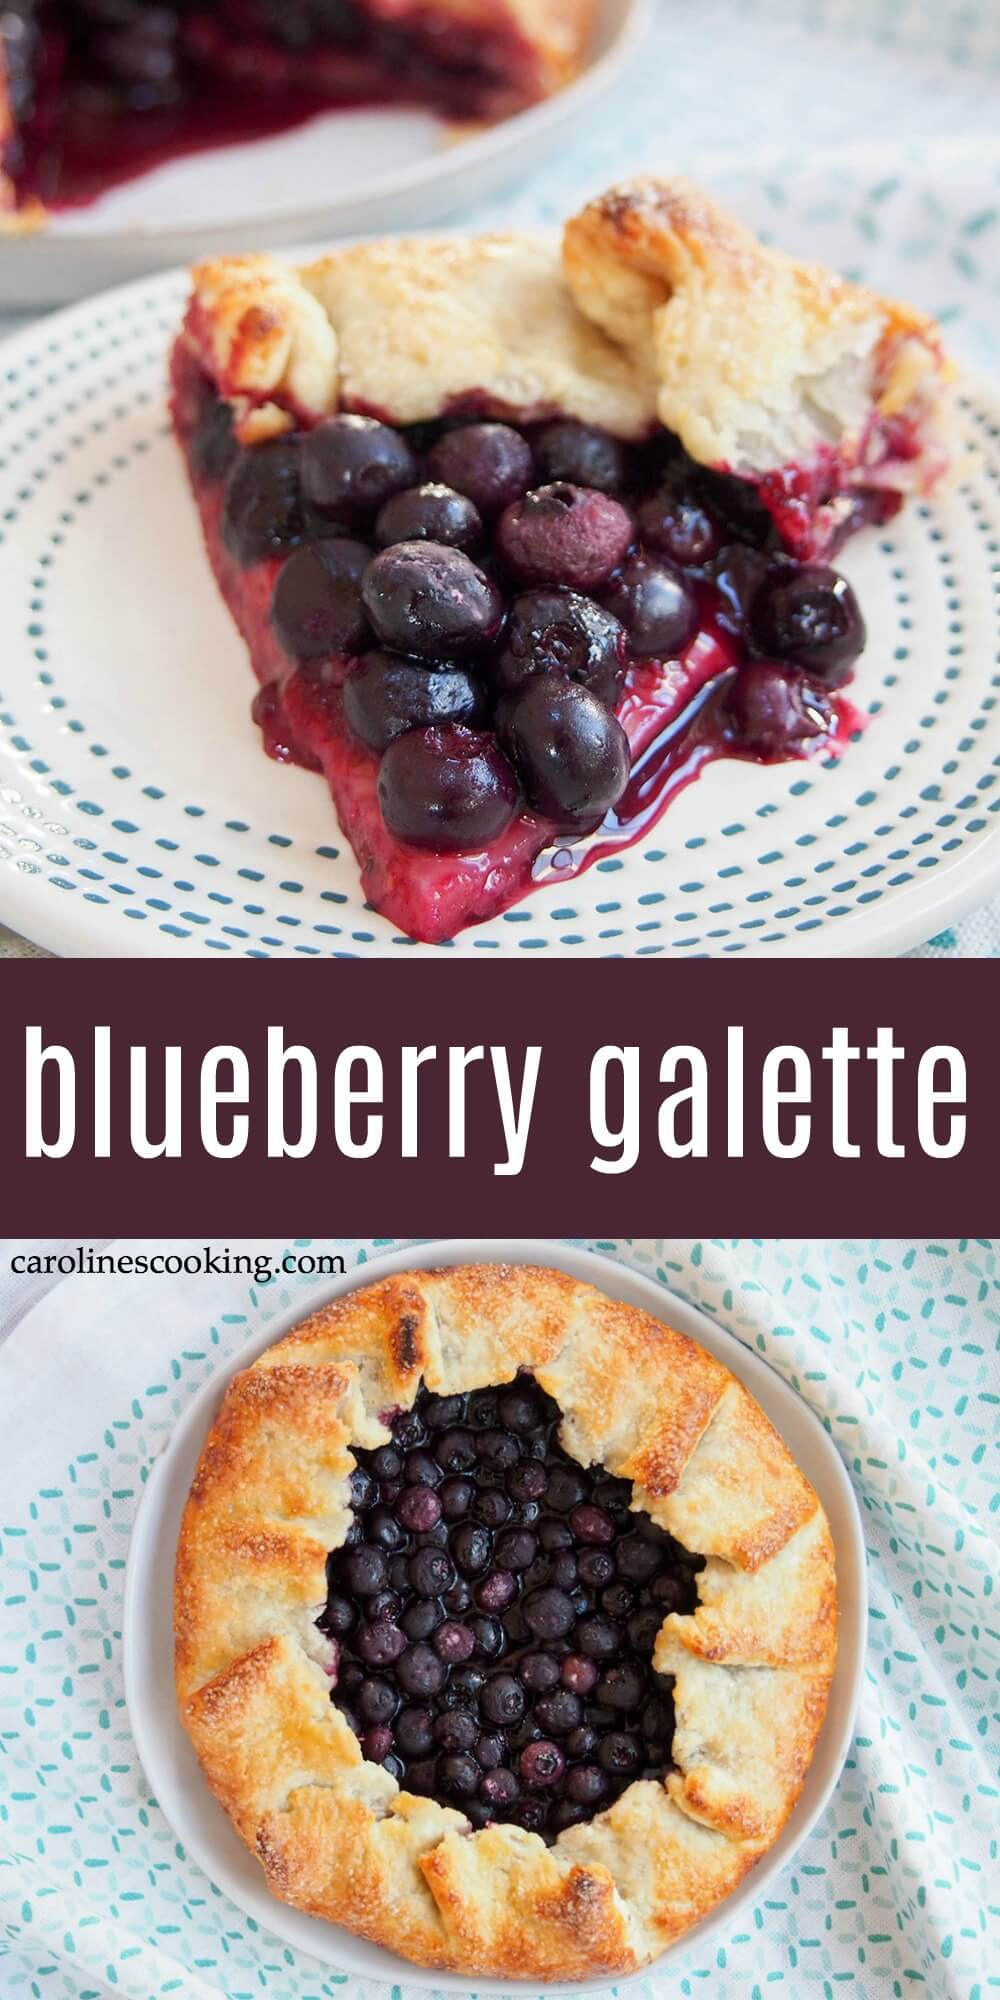 Don't think the name blueberry galette means this is fancy or difficult. This rustic free form tart is easy to make and so delicious. Crisp, tasty and oozing with berries. #blueberry #galette #dessert #blueberrytart